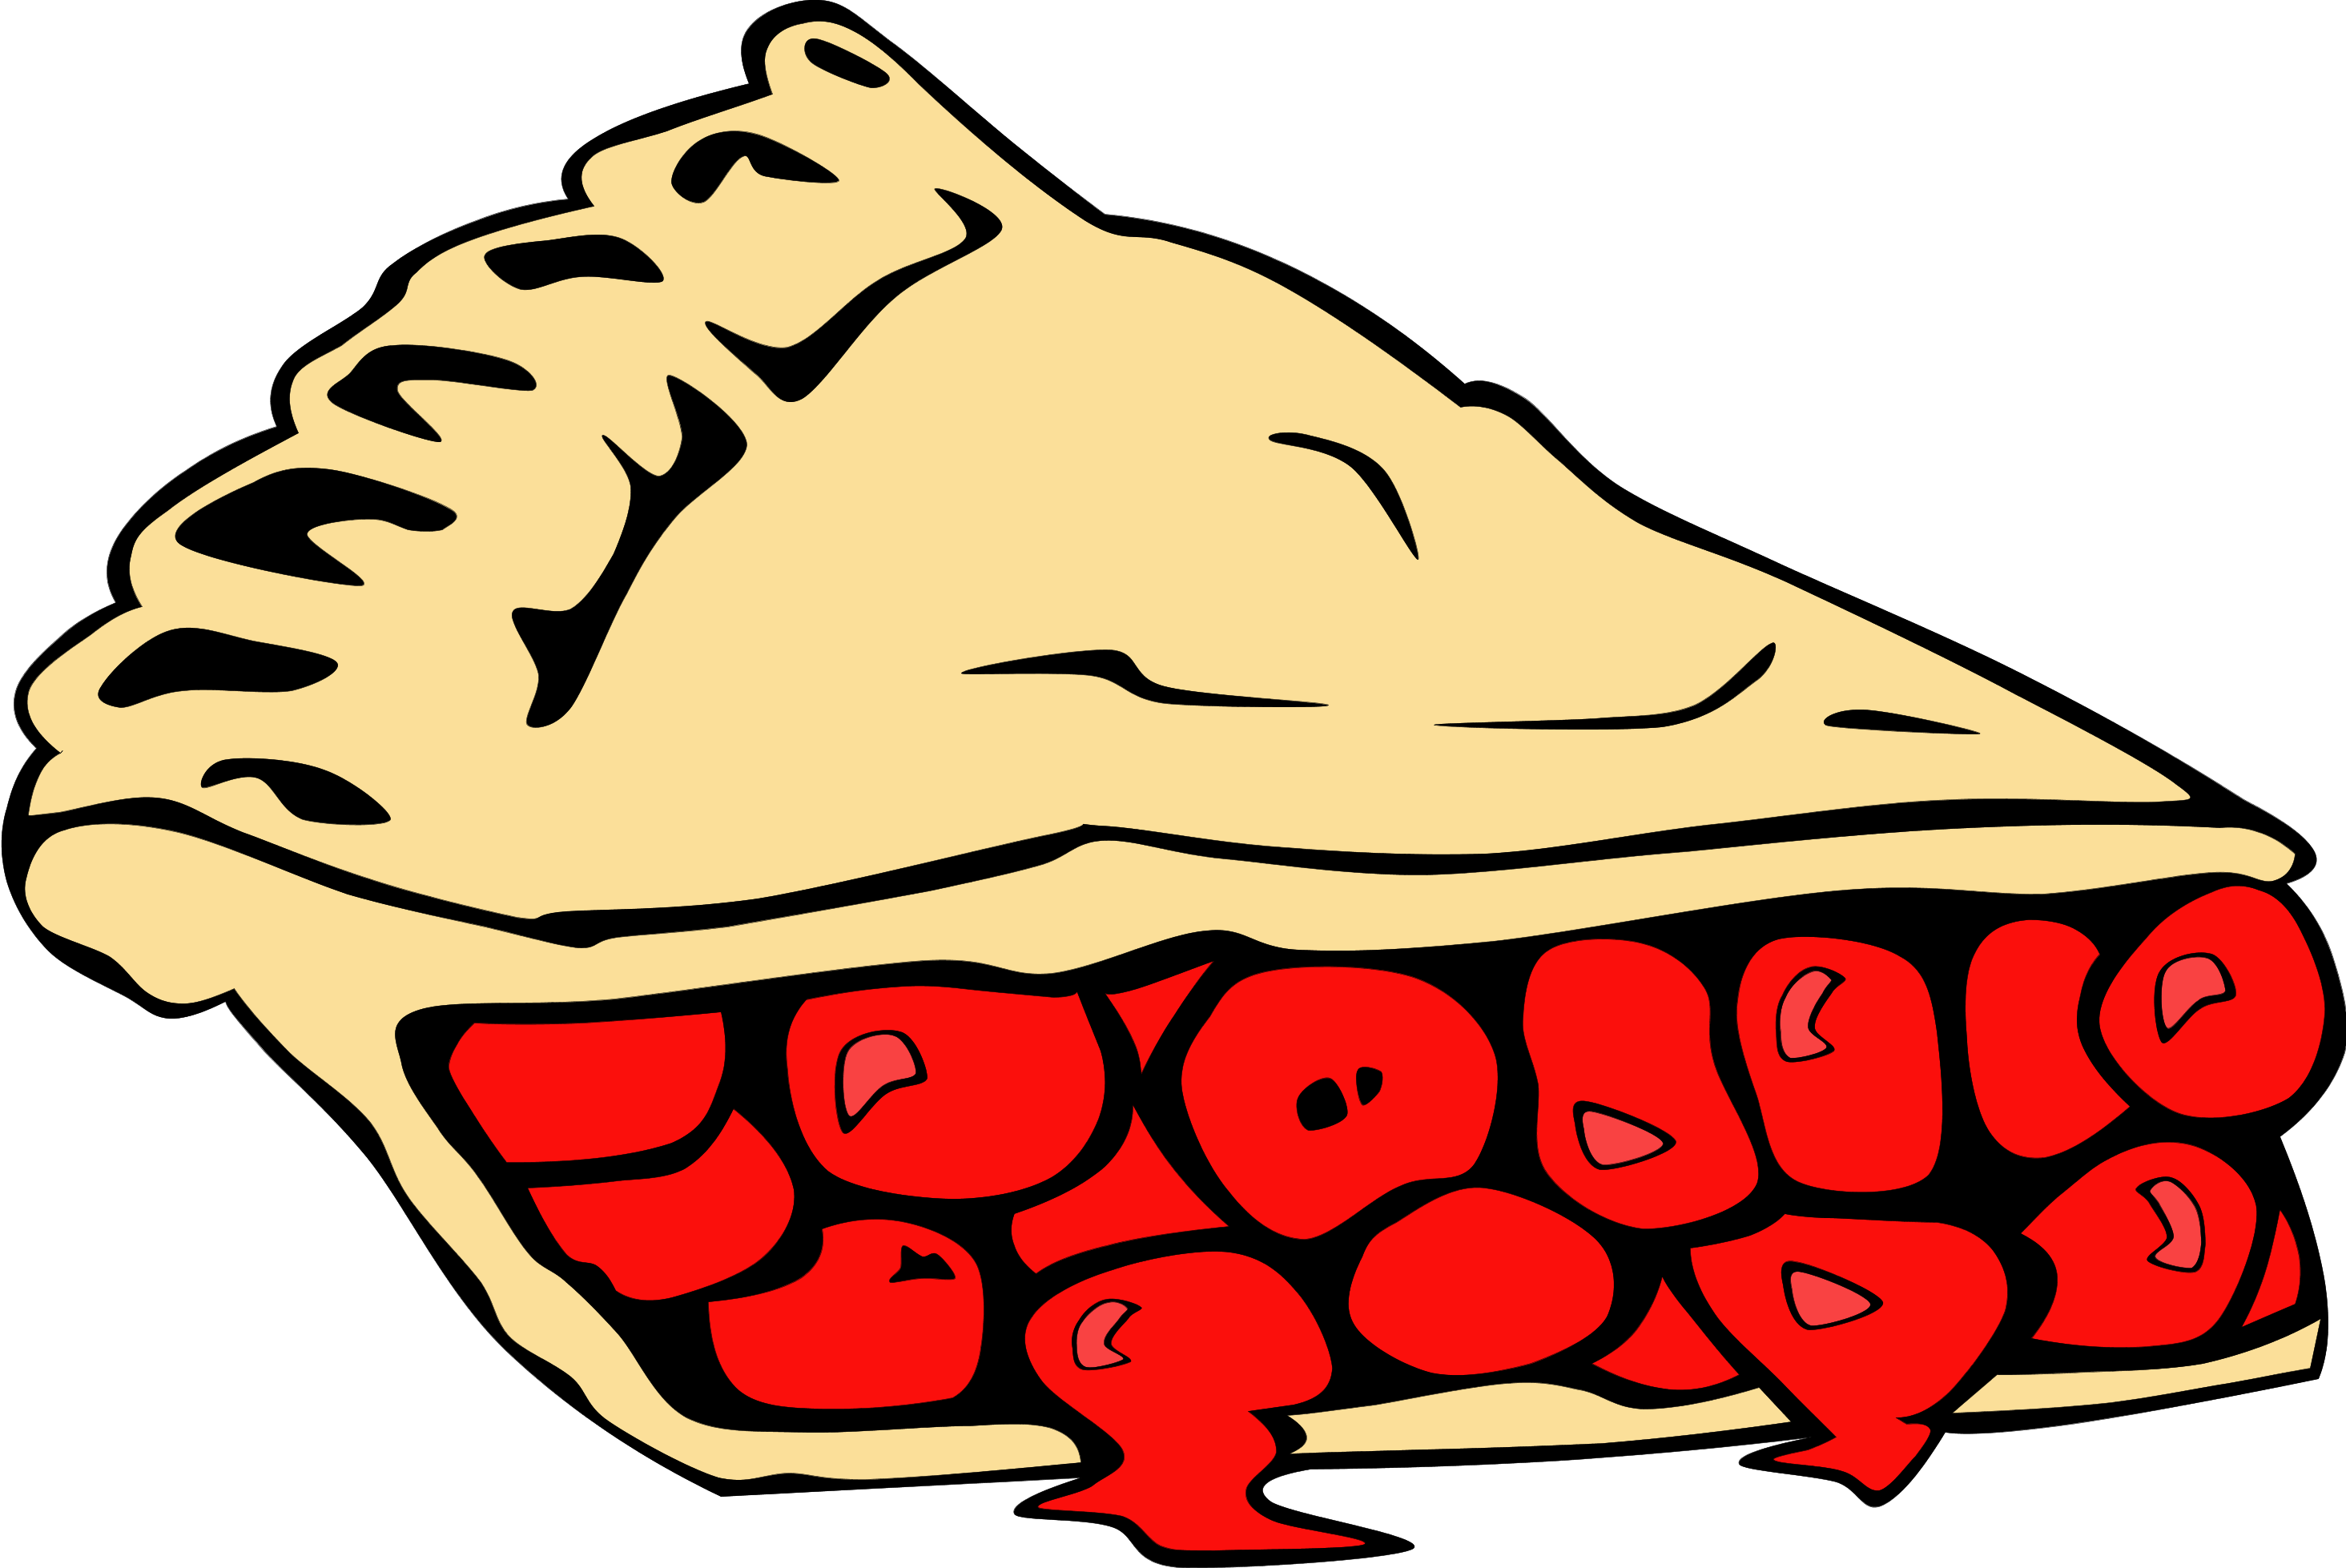 Pie clipart. Got